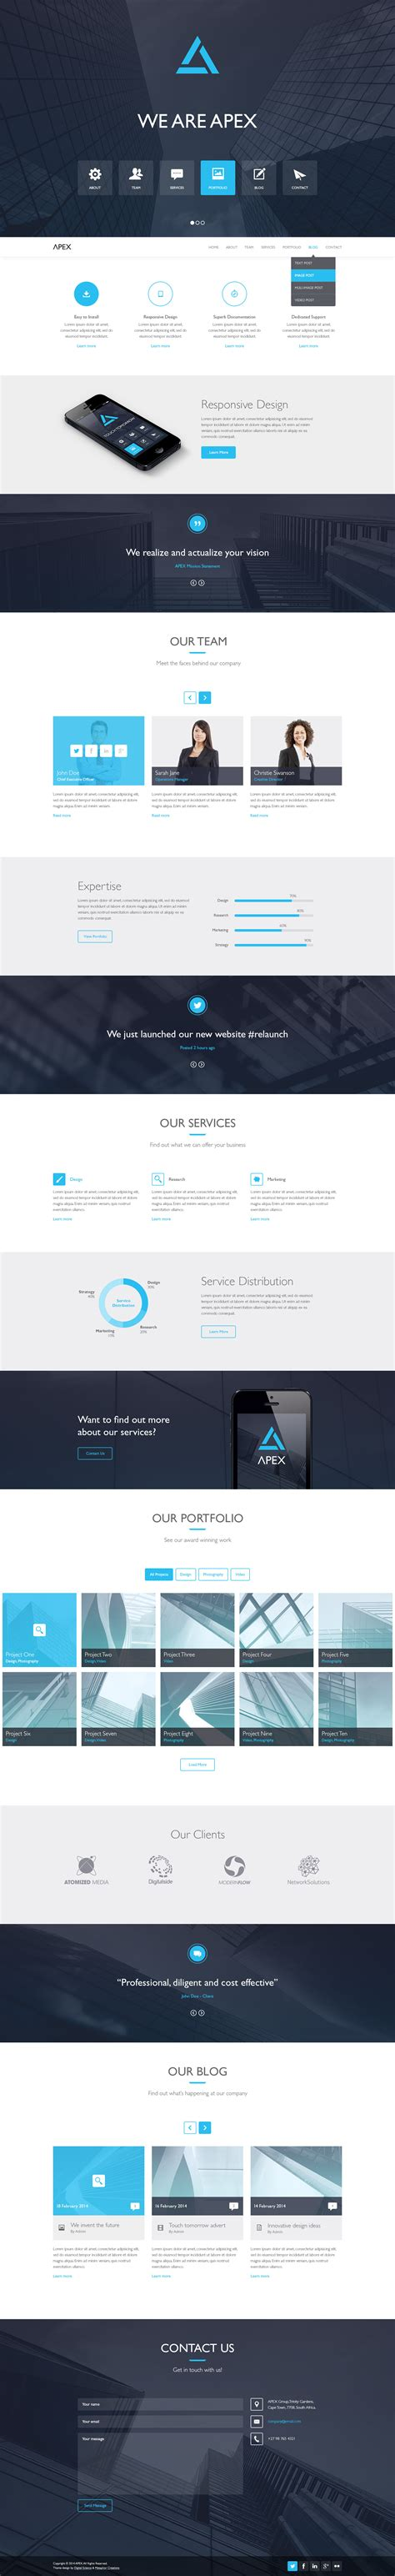 mdm html themes download apex wordpress theme download free flatmaster